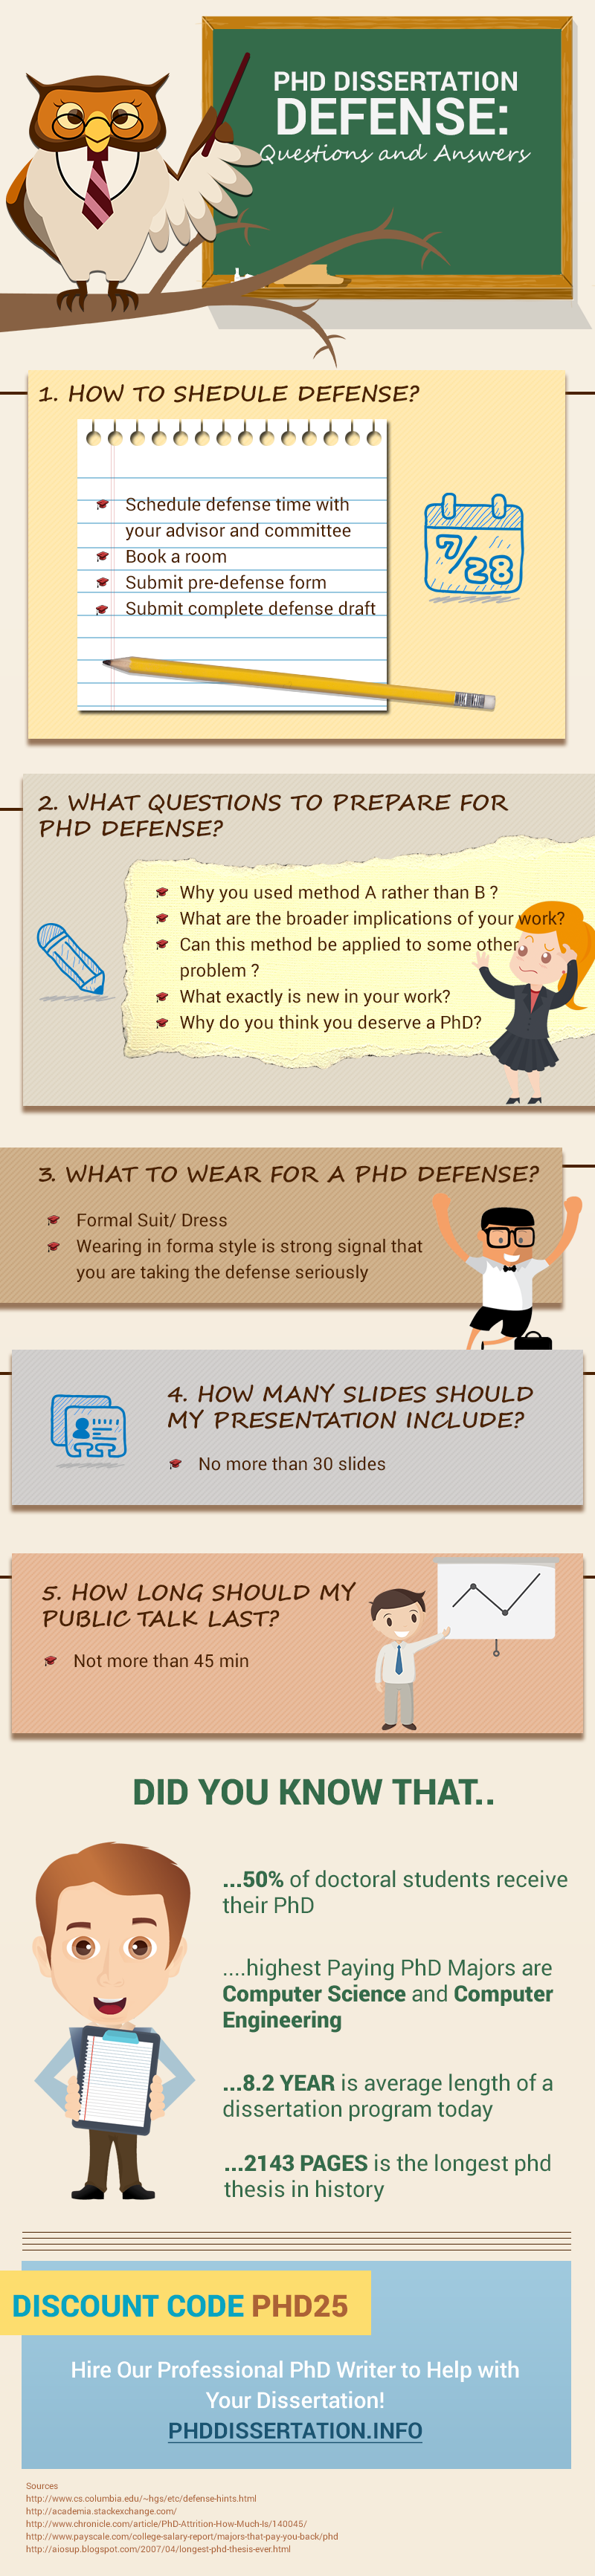 Phd dissertations online kharazmi university